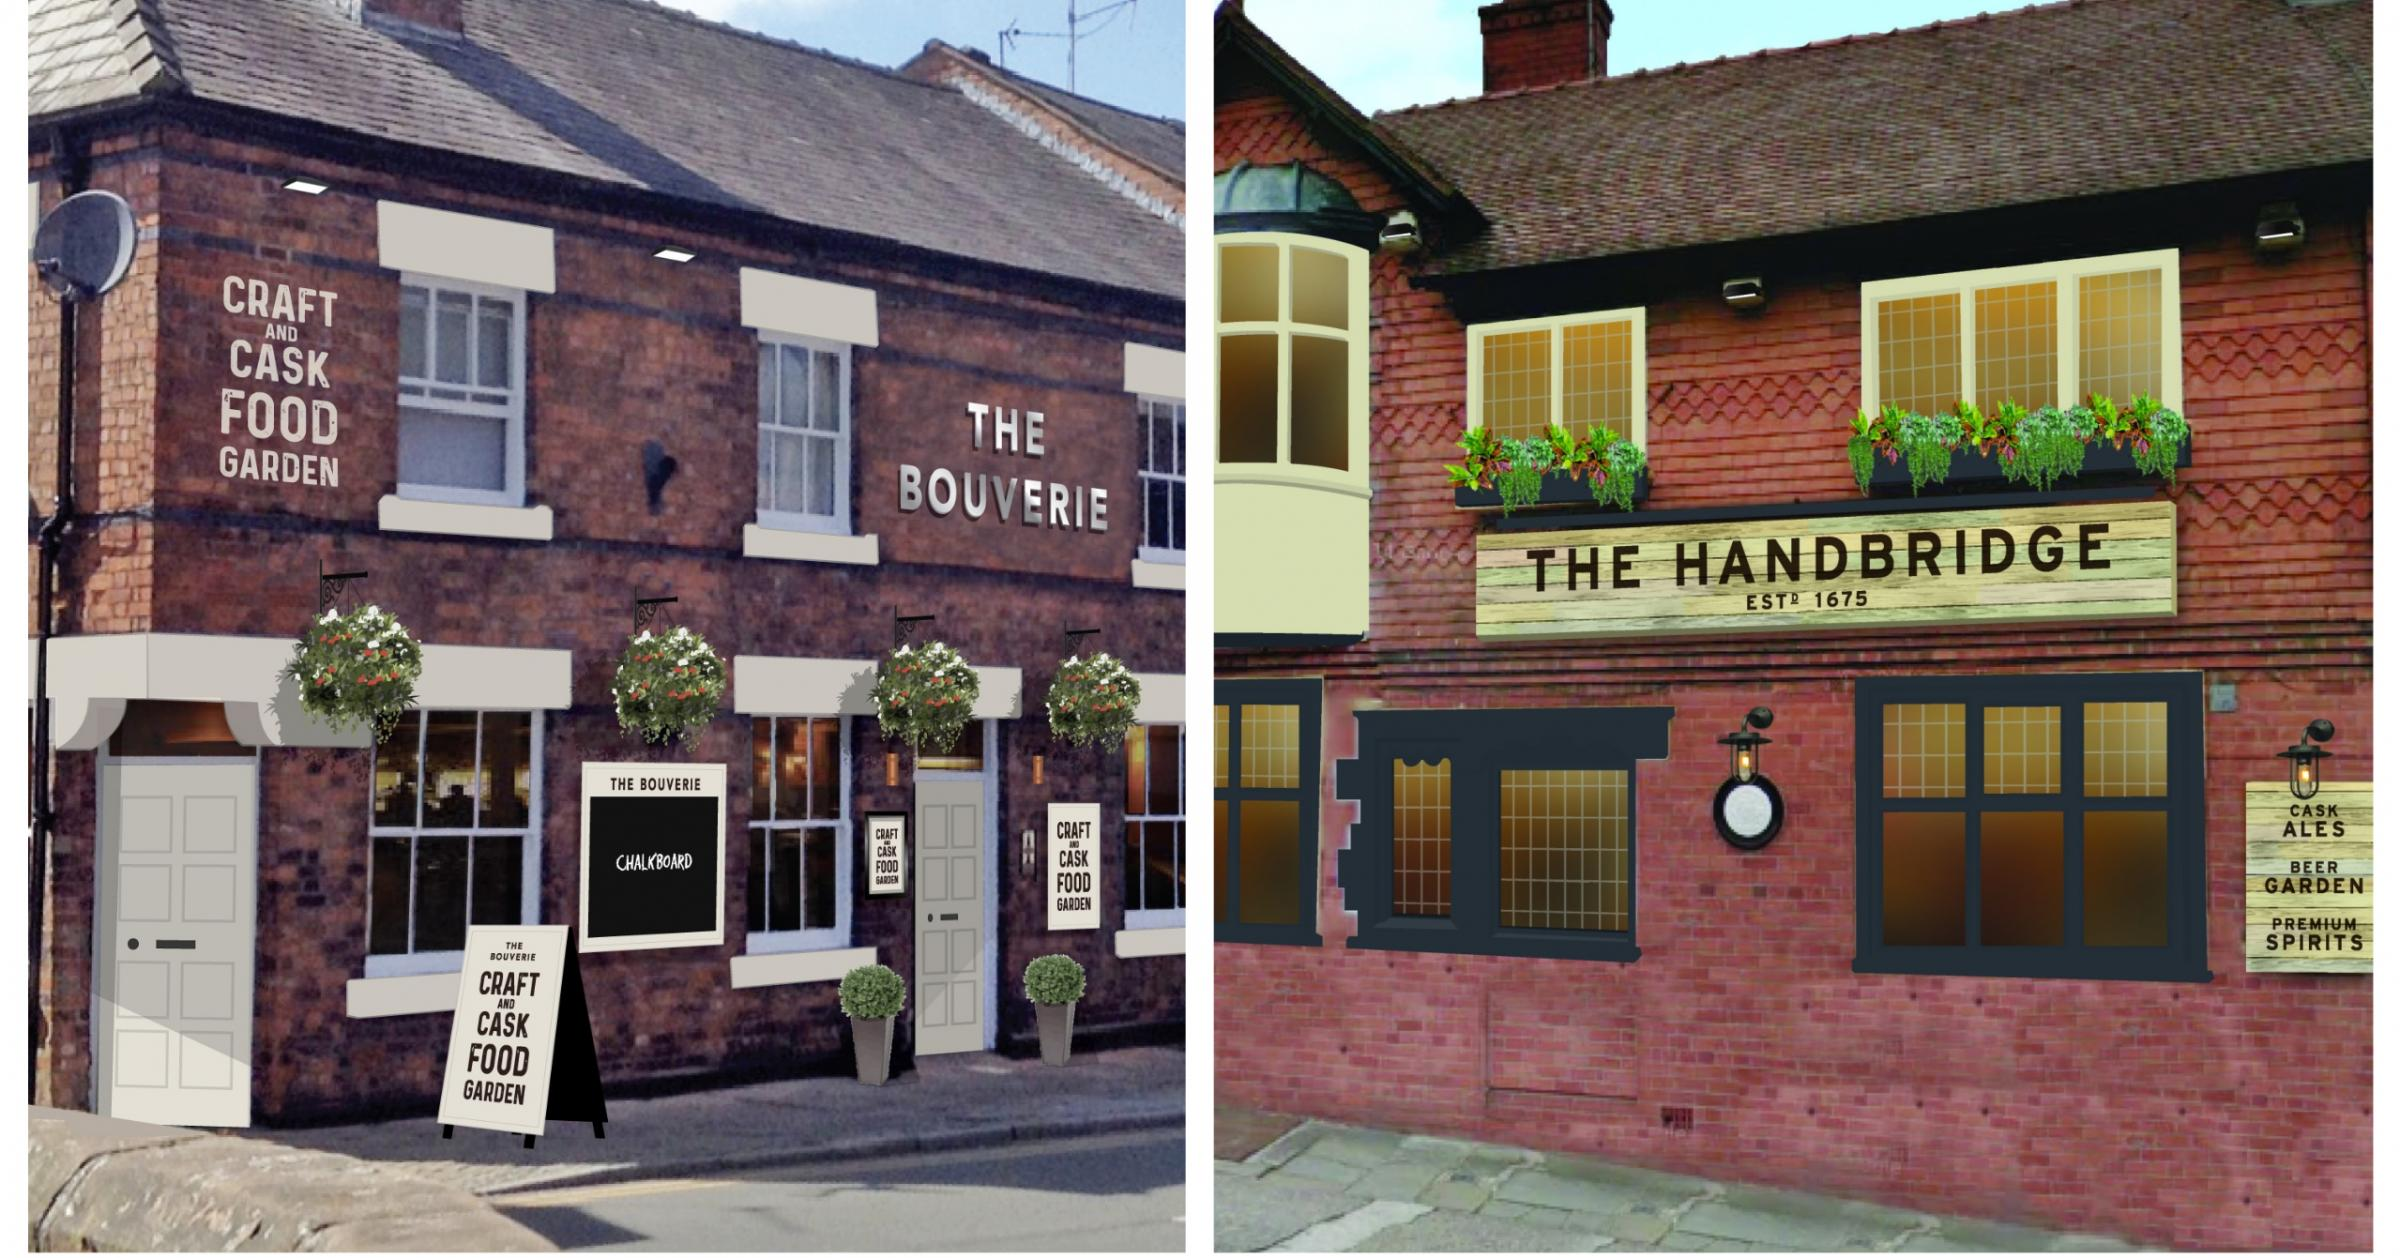 How the exteriors of the two pubs will look.